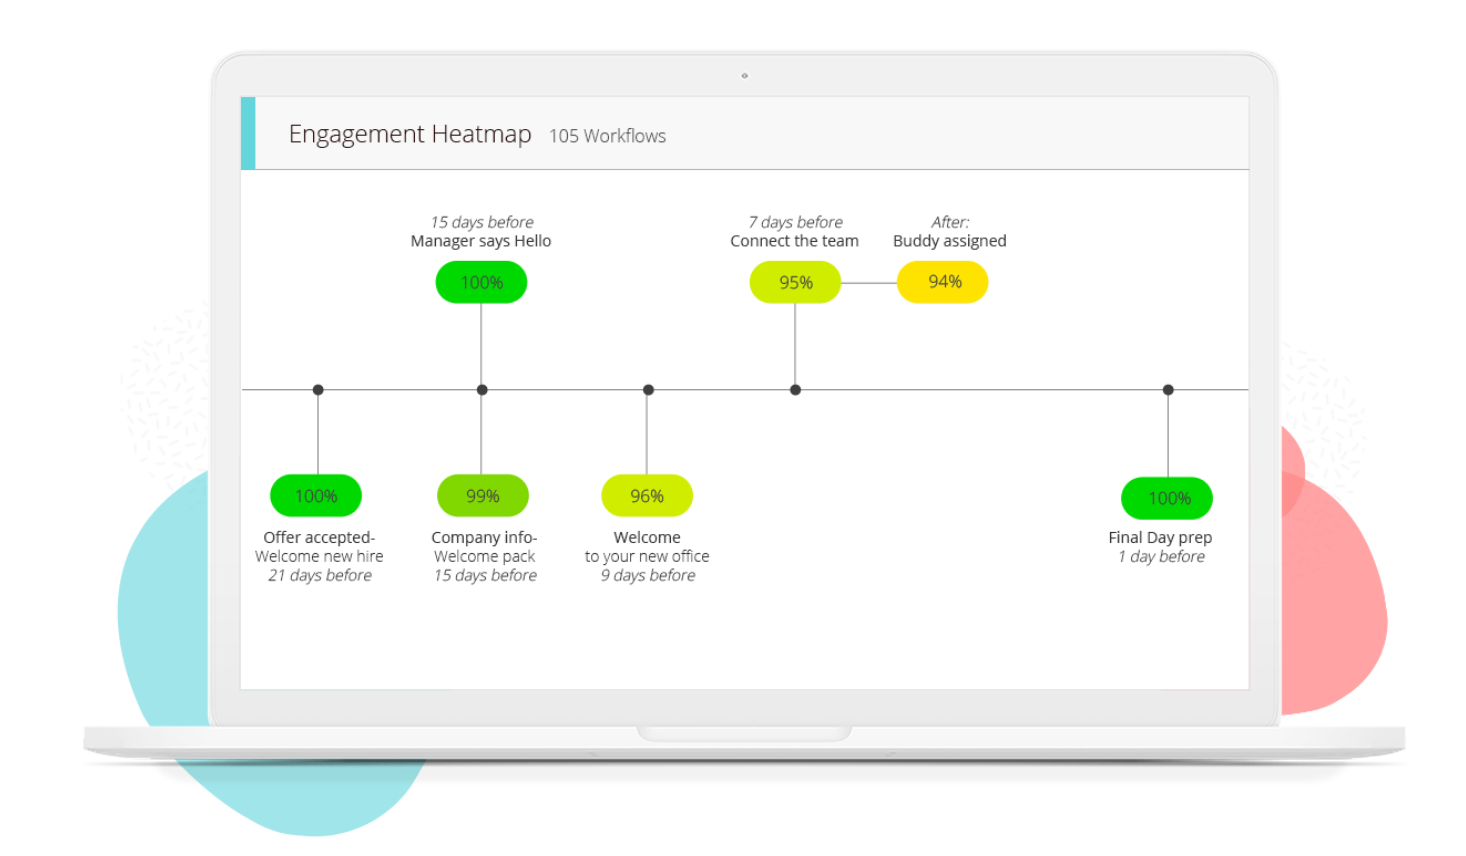 An engagement heatmap helps users understand manager and new hire engagement throughout the onboarding process